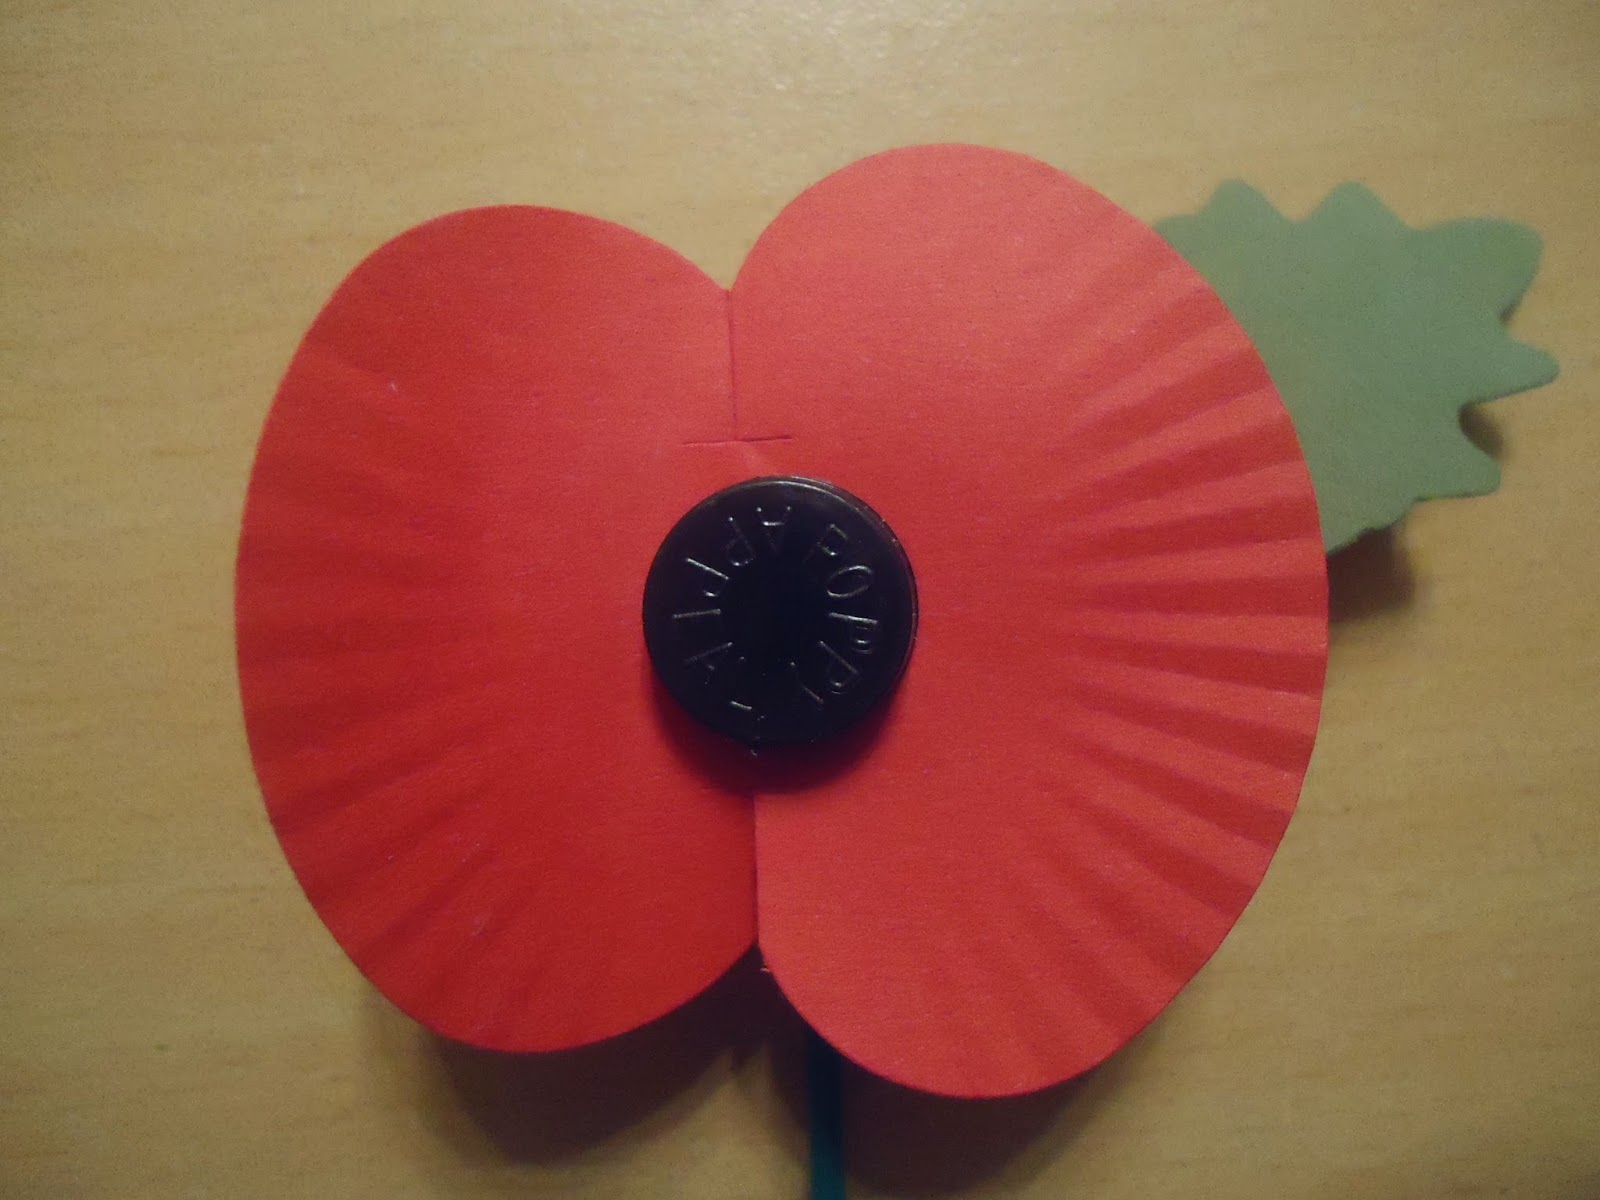 Remembrance Ypres Poppies Belgium World War I